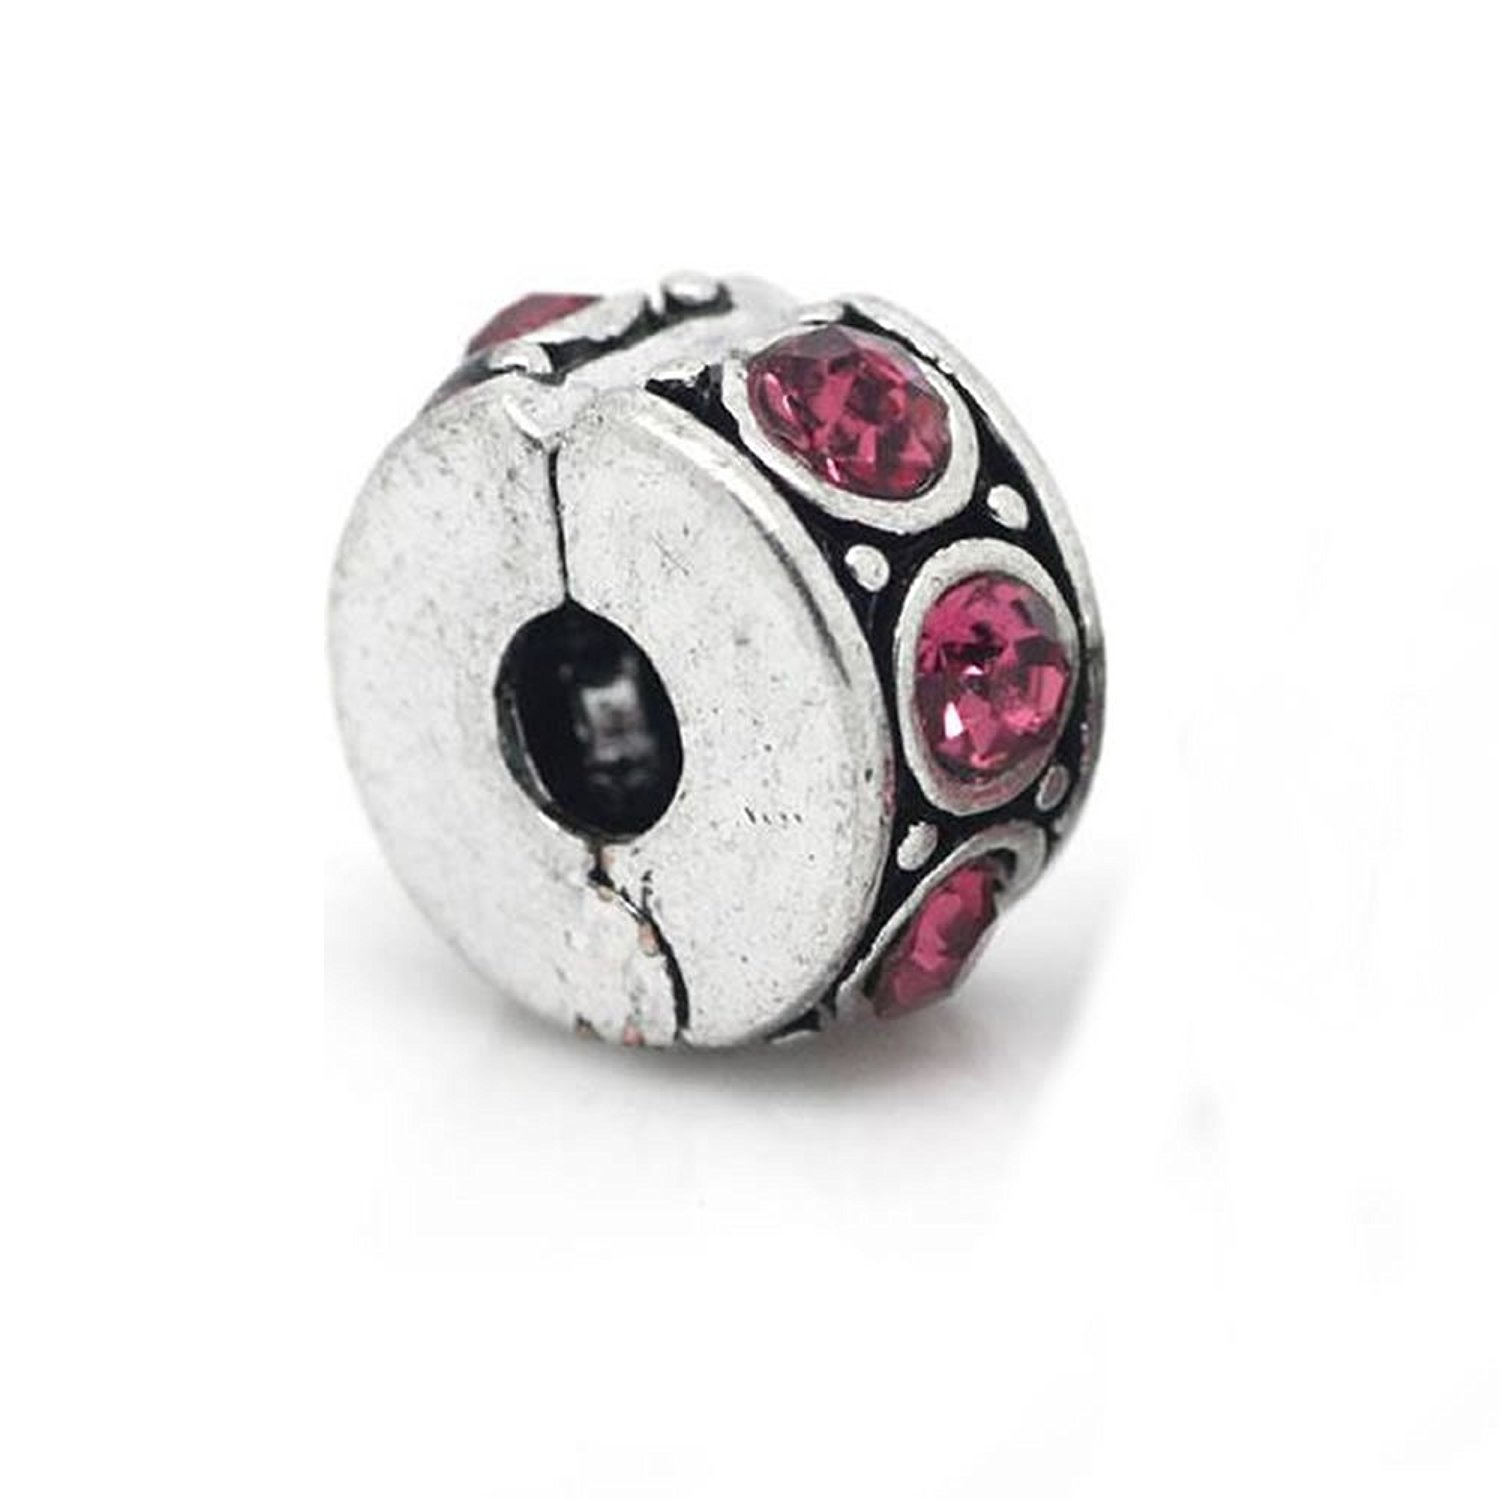 Clip Lock Stopper Bead with Pink Stones with 2 Clear Silicone Stopper For Snake Chain Charm Bracelet